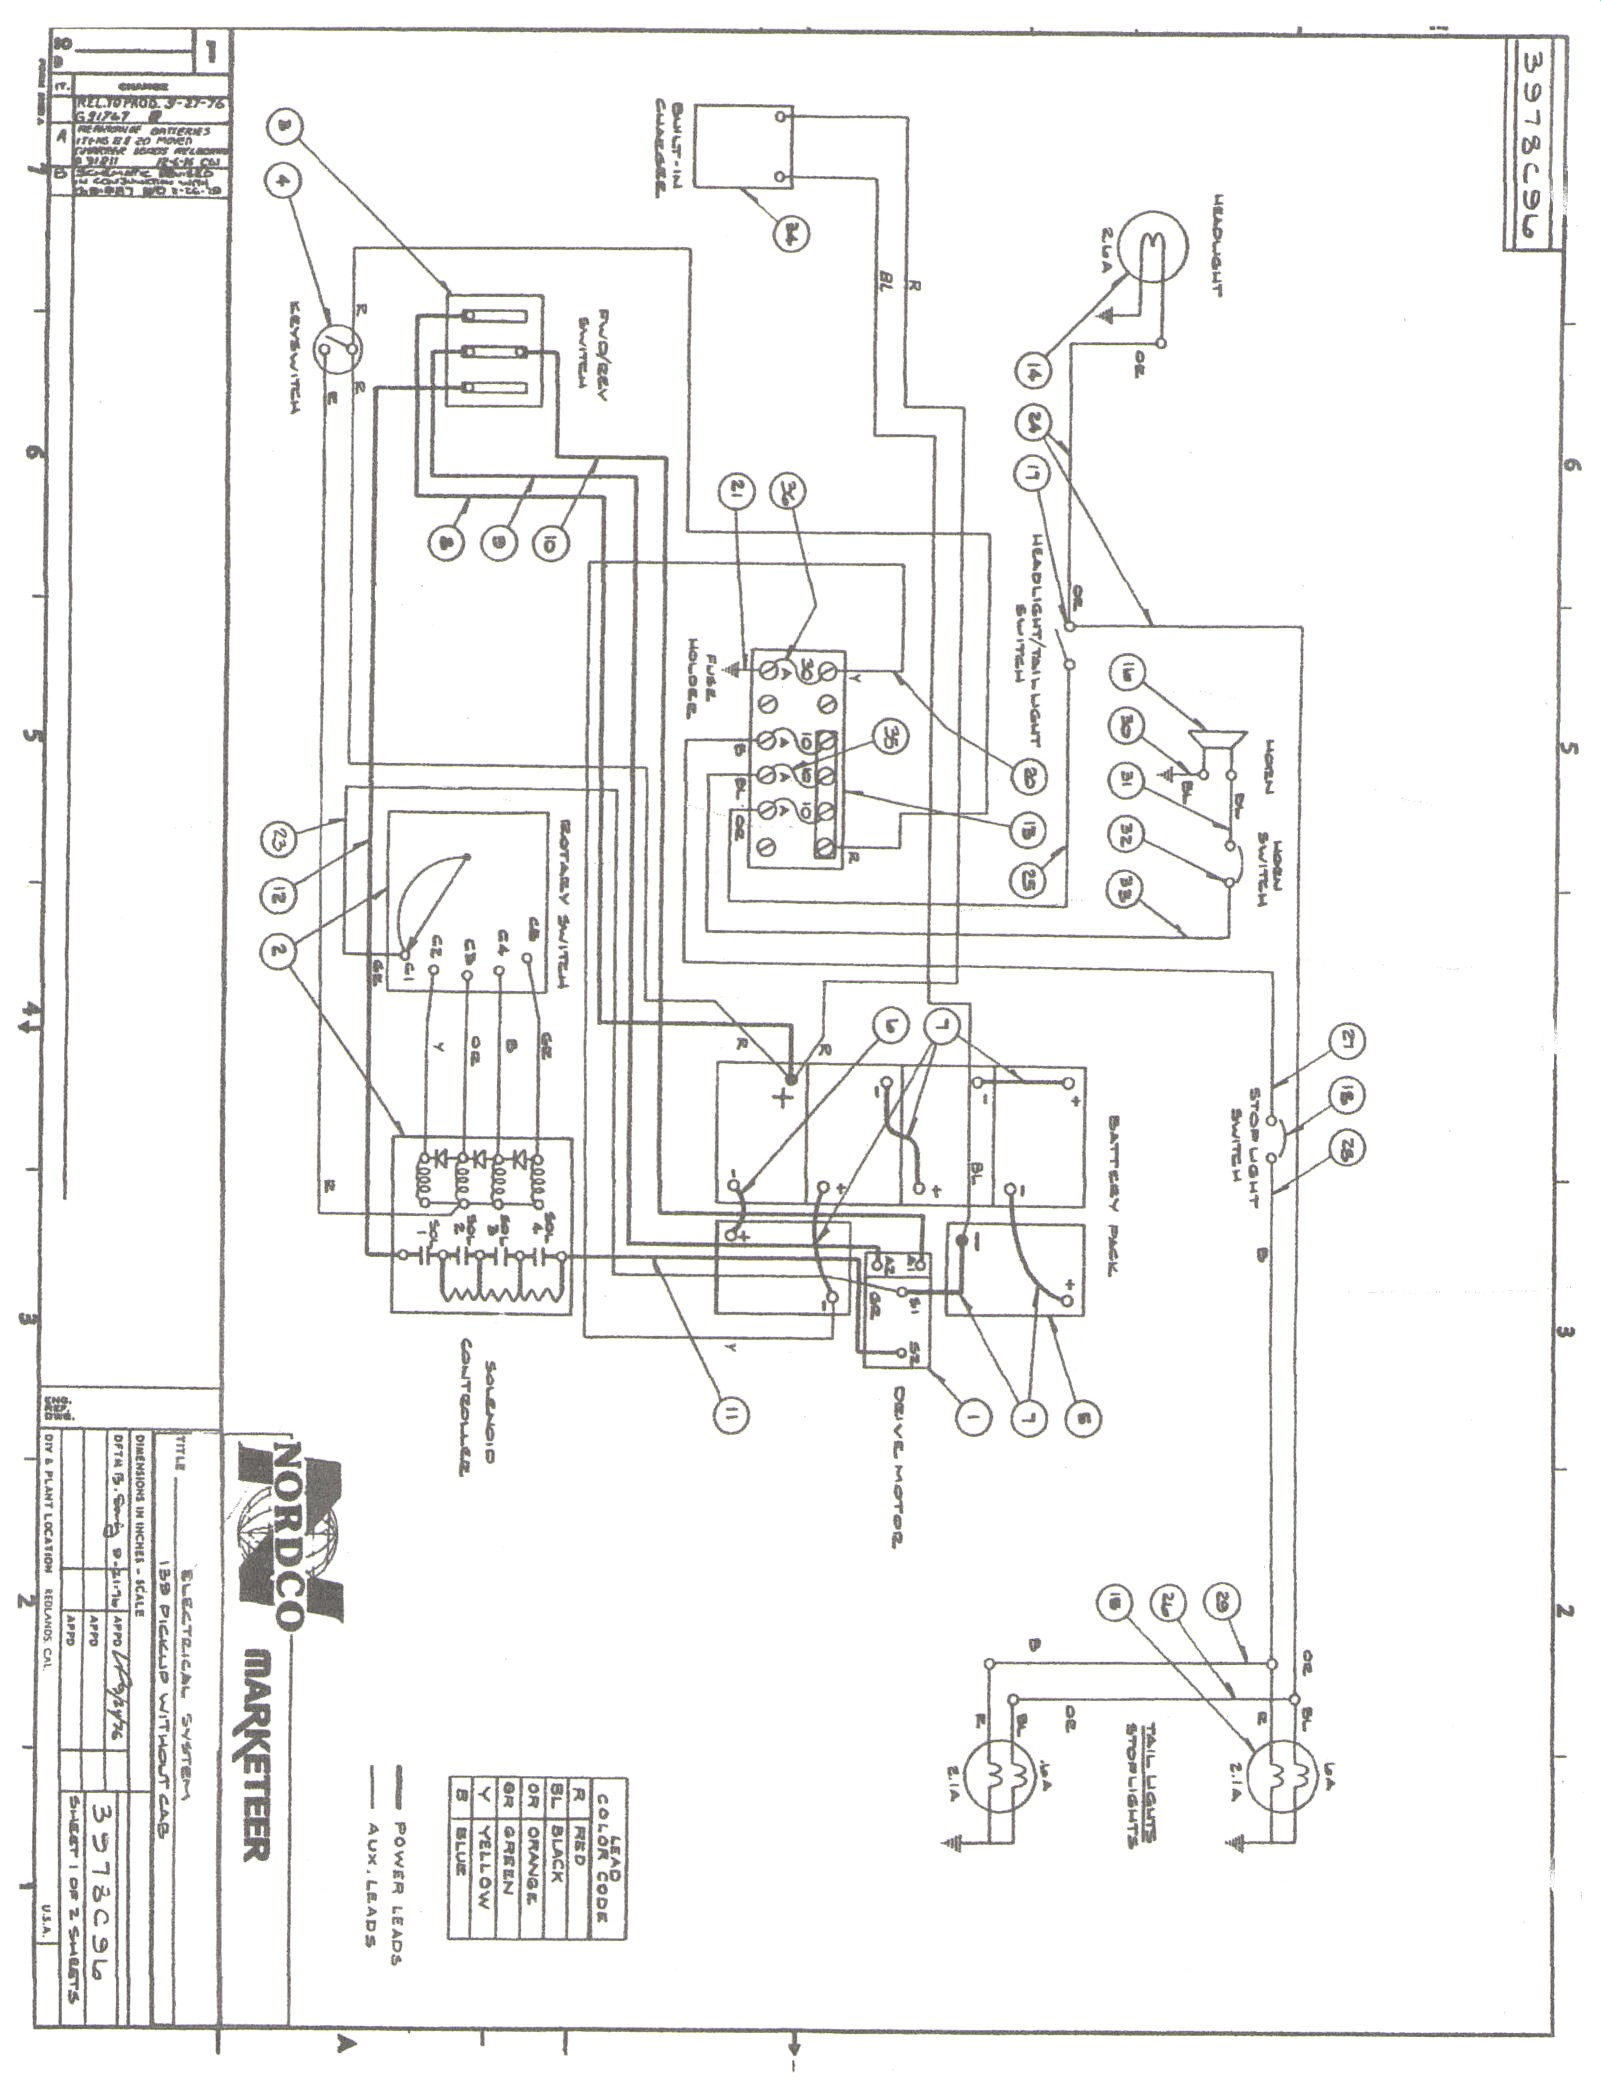 2002 Txt Gas Ezgo Golf Cart Wiring Diagram. Wiring. Wiring Diagrams ...